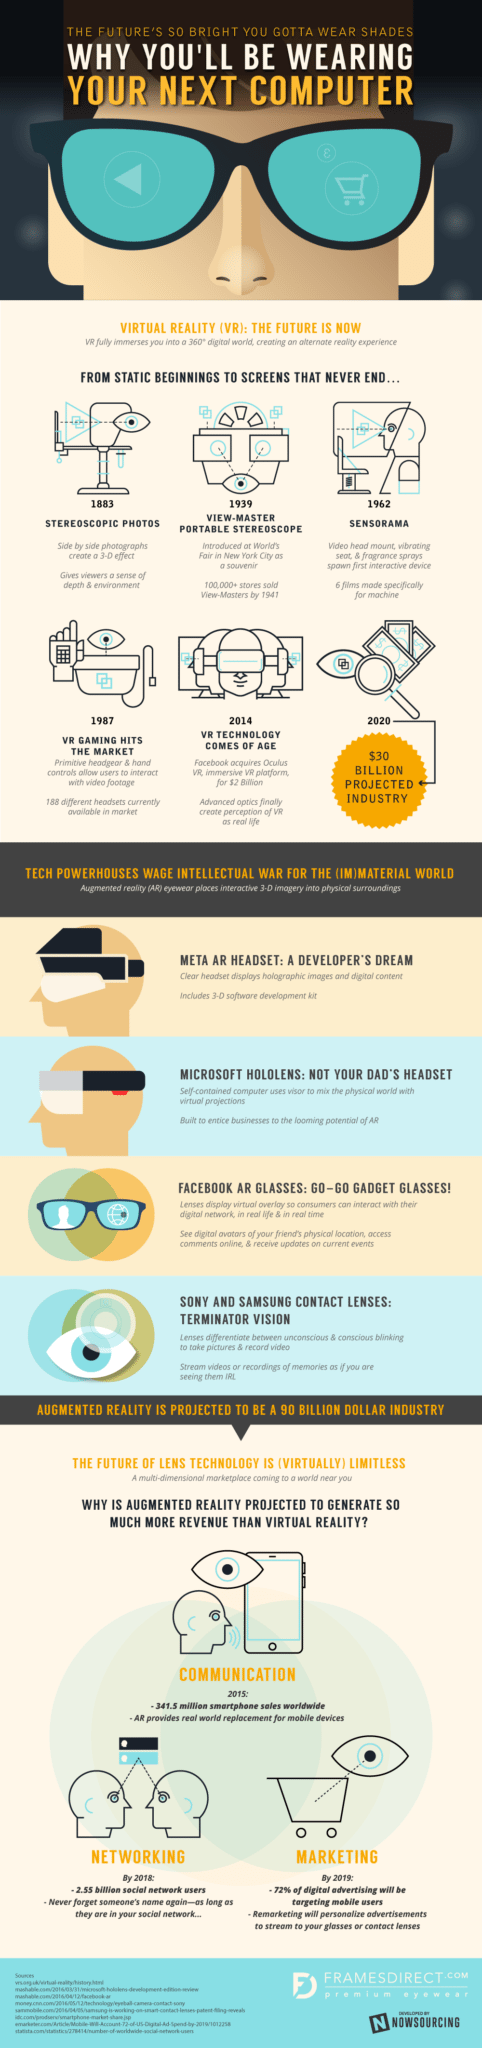 virtual-reality-glasses